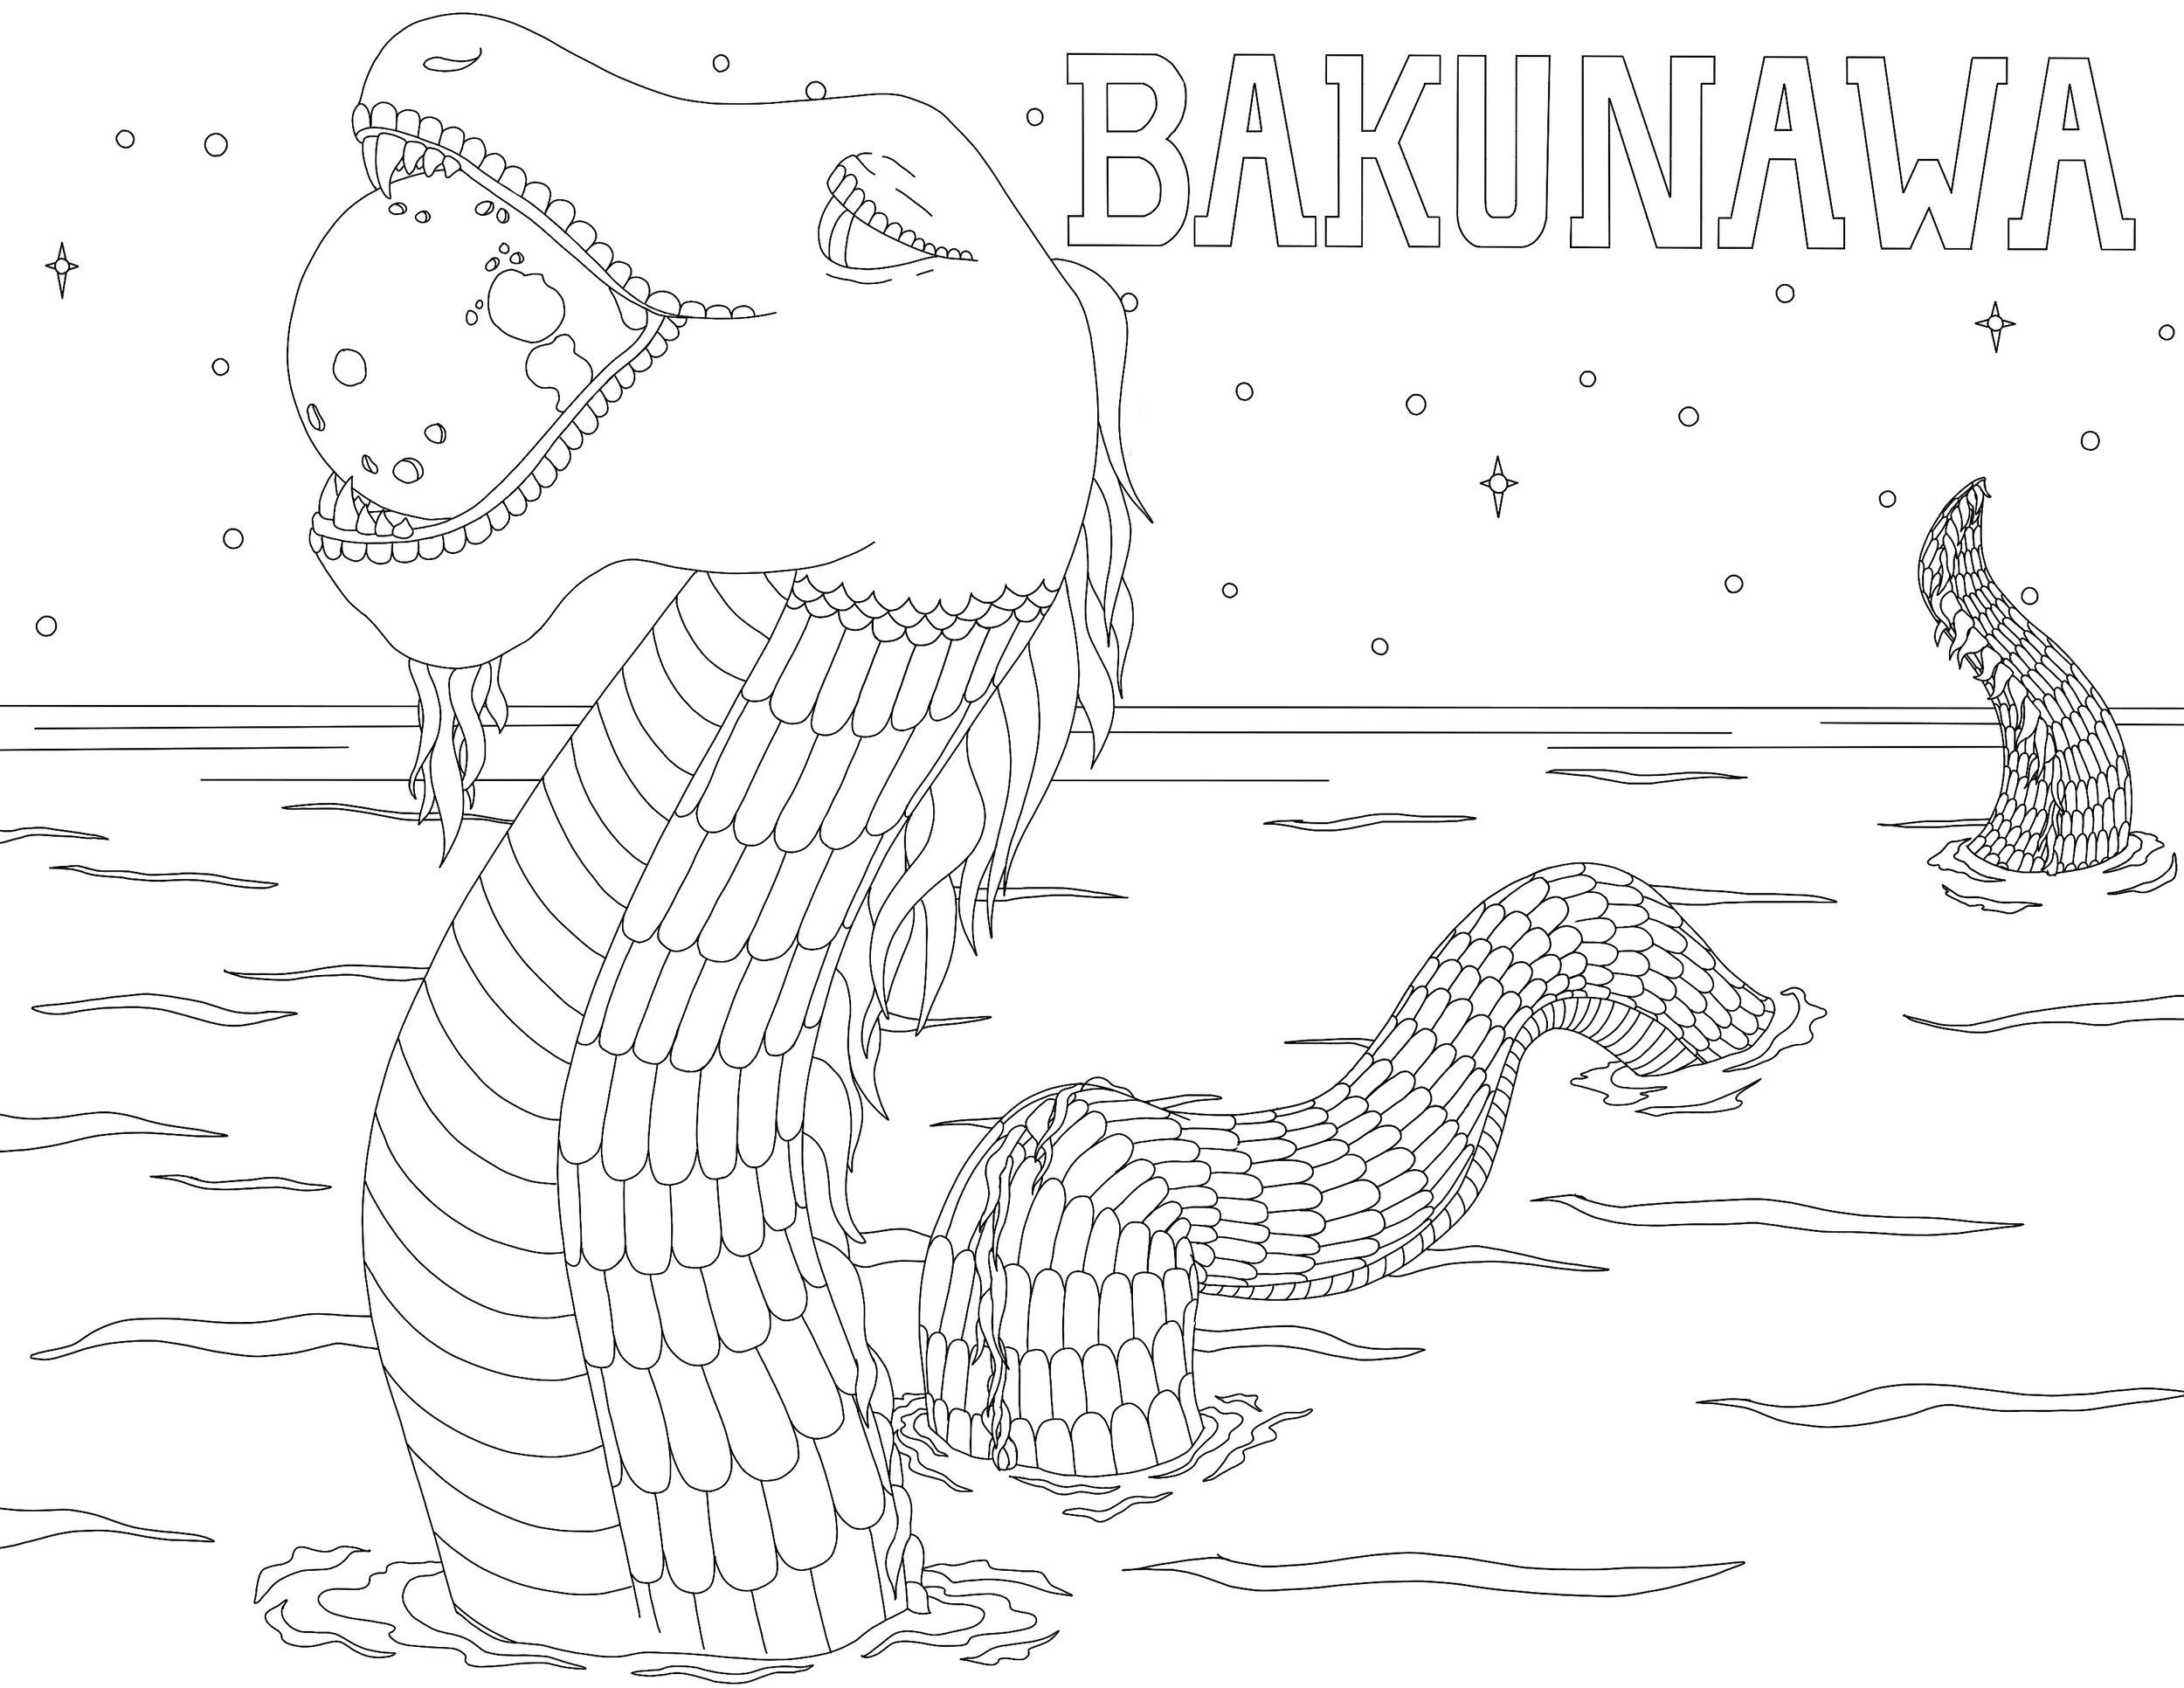 The Bakunawa is a Dragon from Phillippine mythology. This sea serpent was responsible for lunar eclipses.